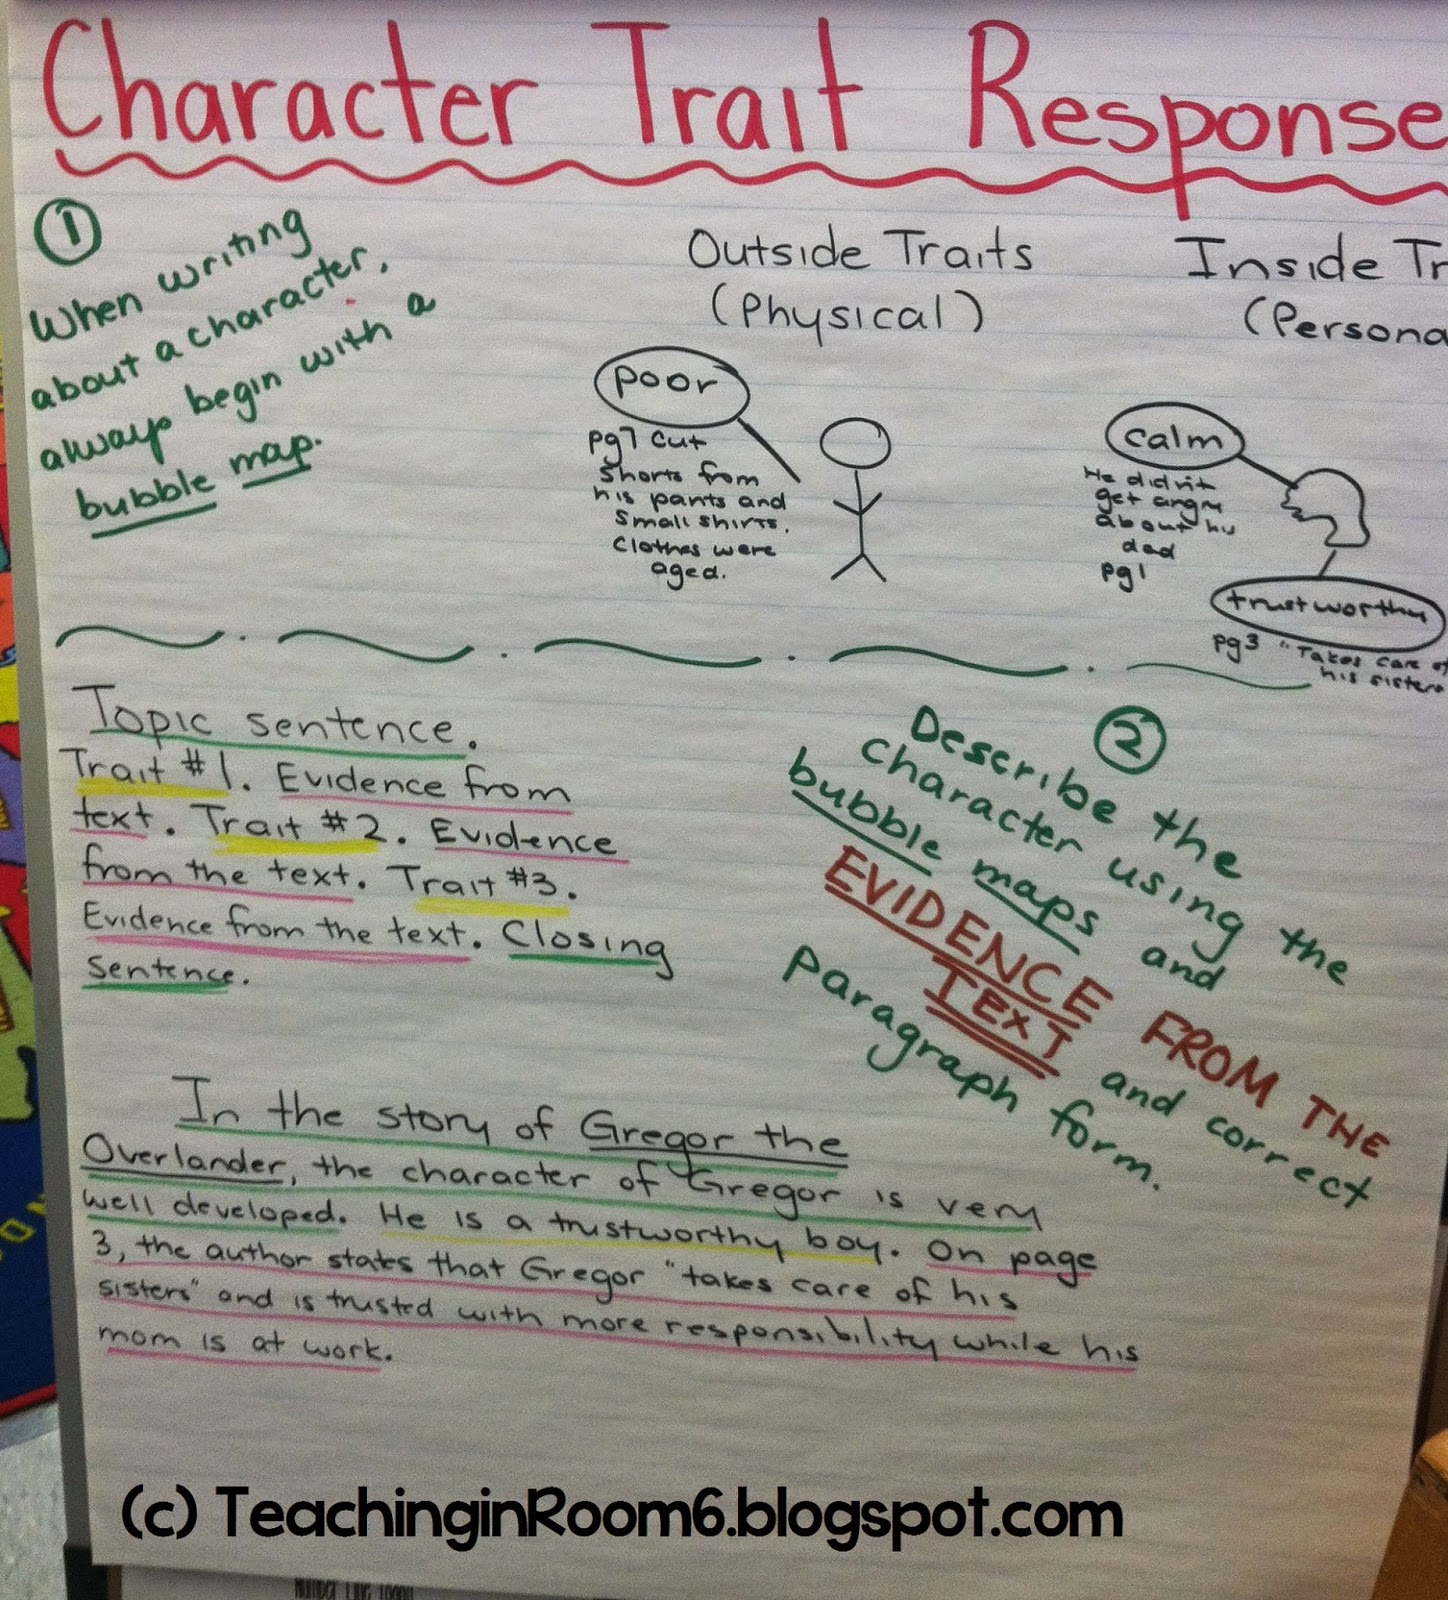 hight resolution of Teaching About Character Traits   Teaching in Room 6